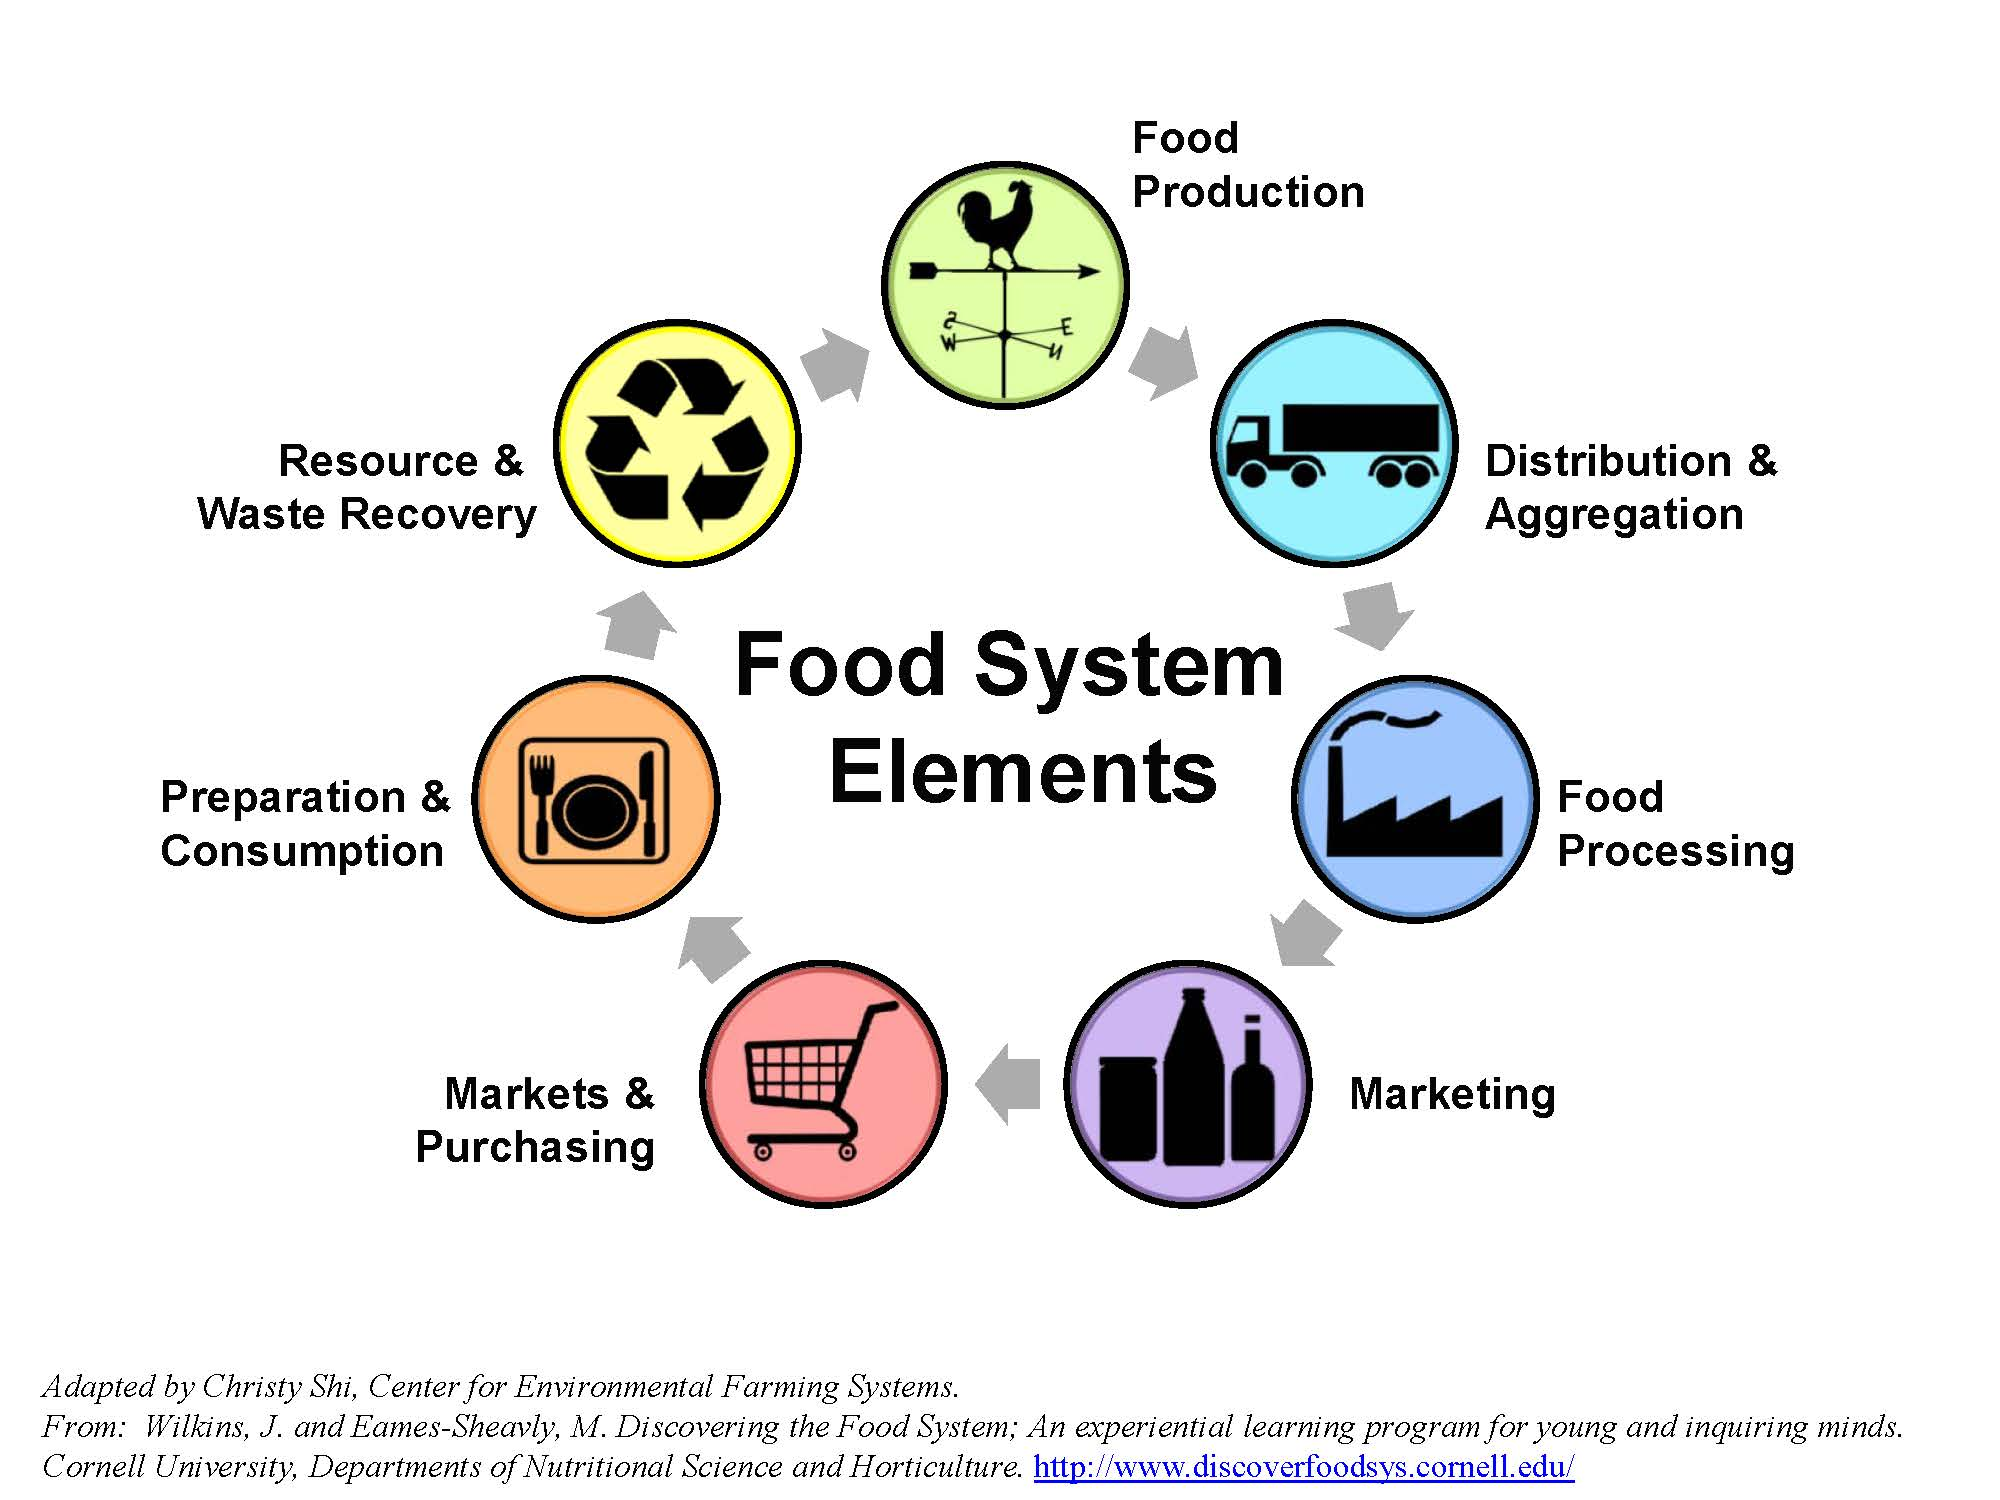 Organic Food Diagrams Wiring Diagram Will Be A Thing 2001 Yamaha Ox66 Schematic Local System Supply Chain Nc State Extension Compounds Line Architecture Design